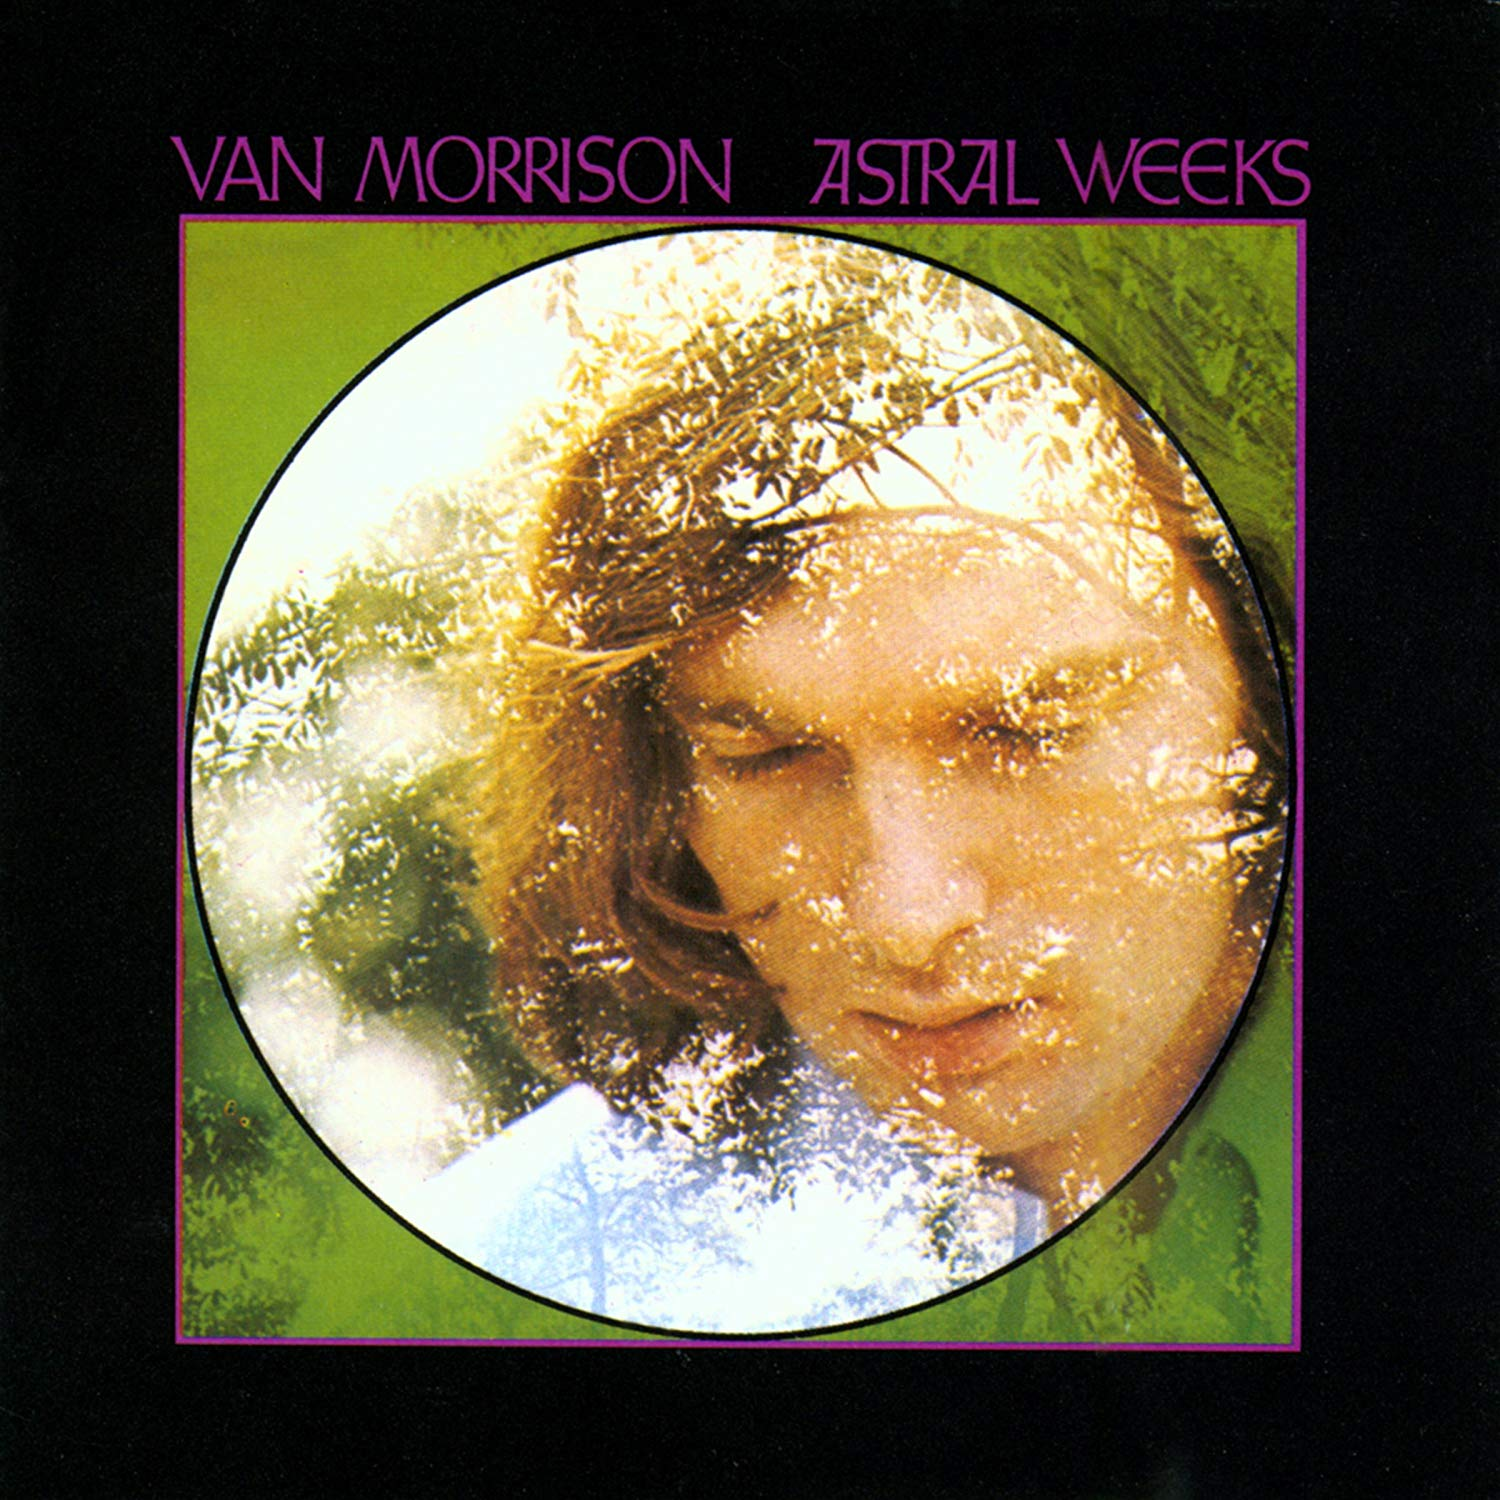 astral weeks The 100 Greatest Albums of All Time